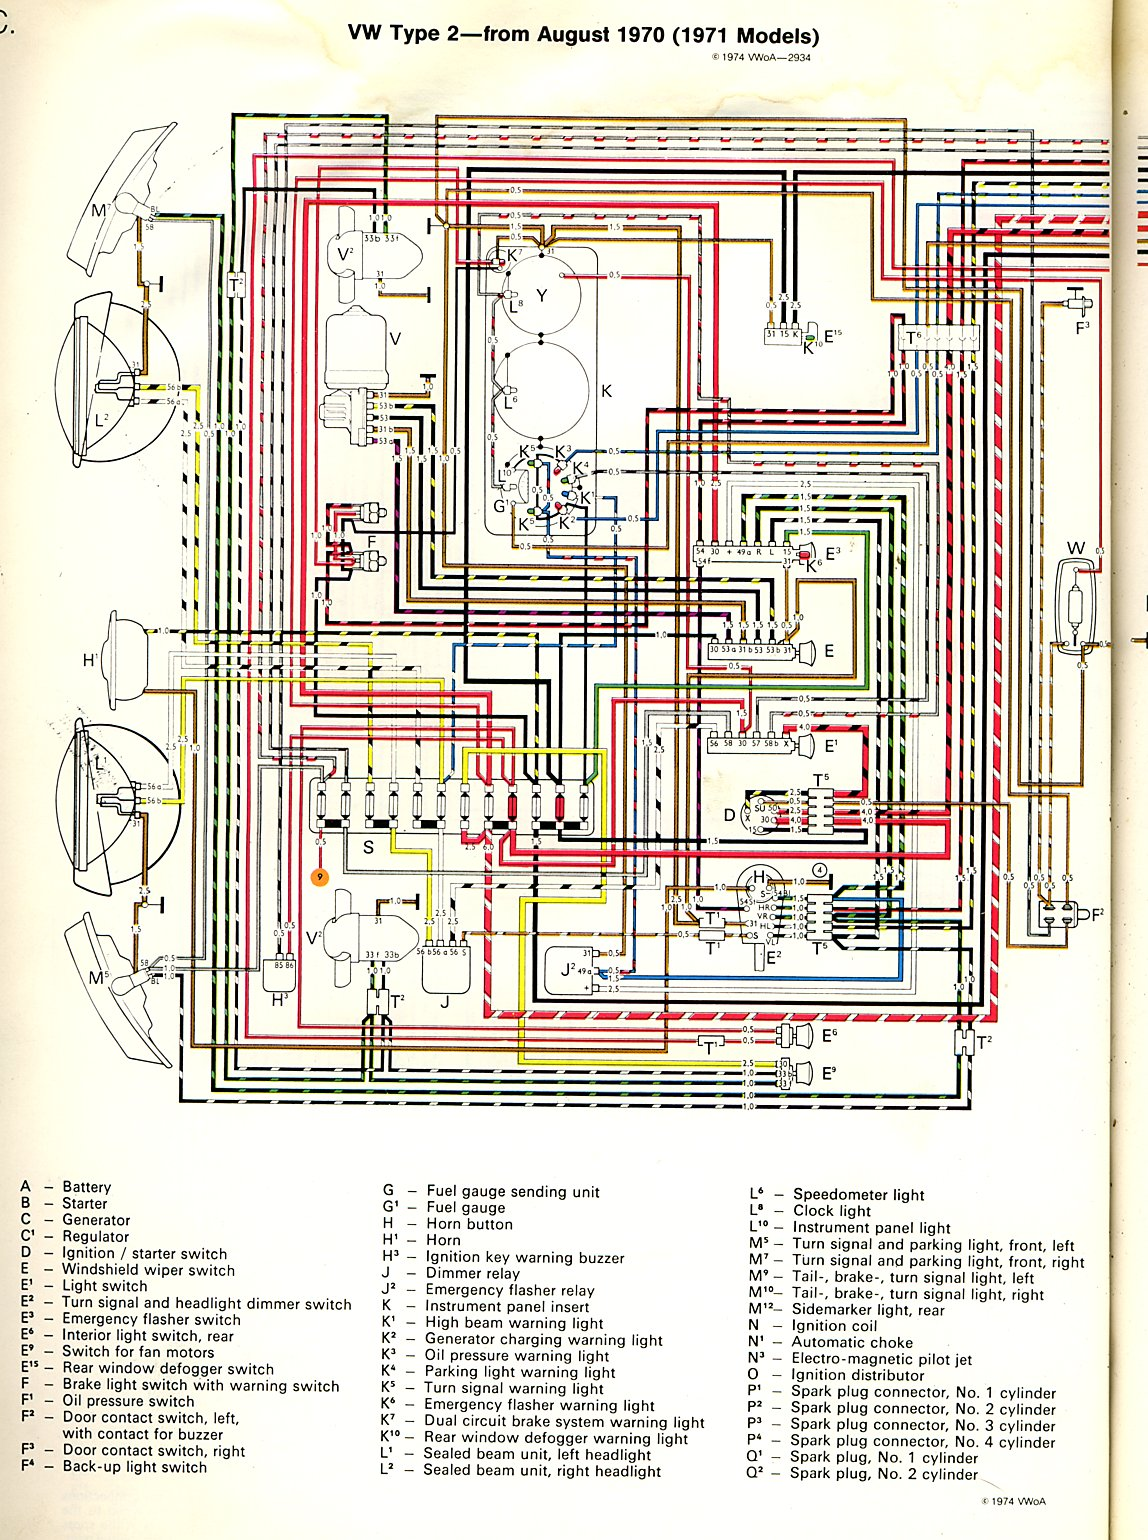 baybus_71a thesamba com type 2 wiring diagrams 1973 vw wiring diagram at mifinder.co